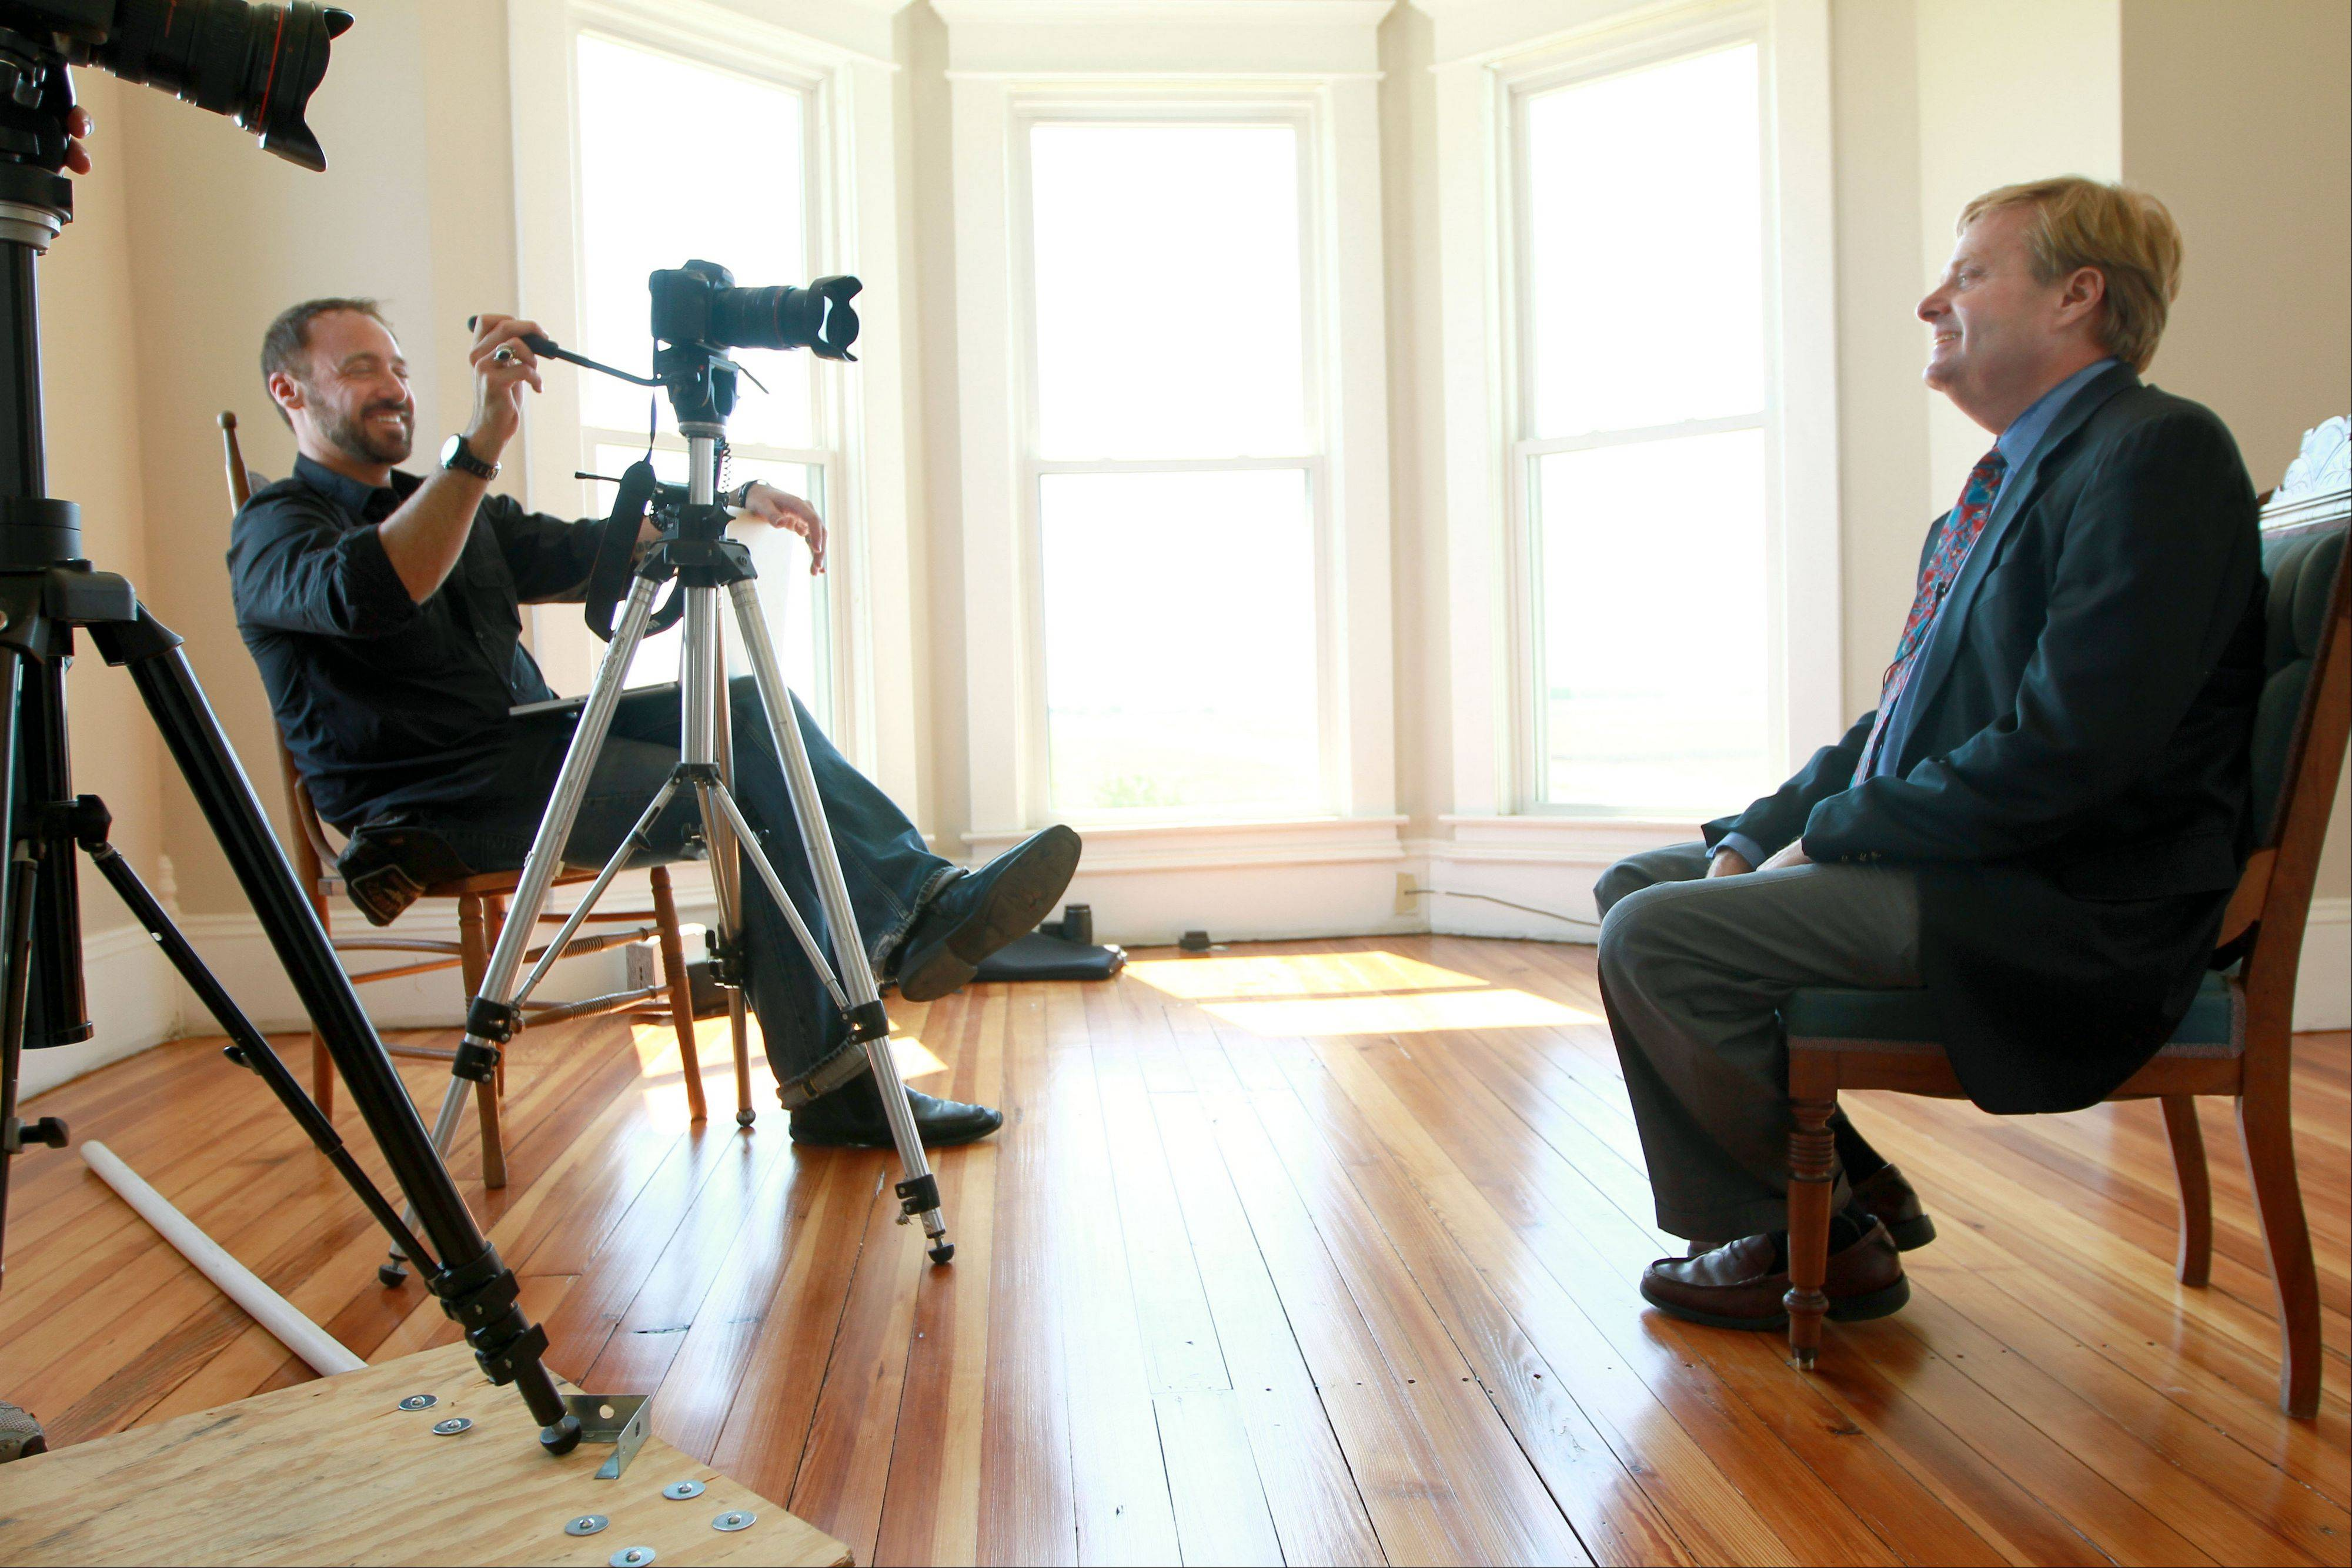 Steve Zukerman interviews Nelson Price about the history of the Dunham house and the area around it for the documentary film project. The Dunham house in Kempton, Ind., is the subject of a documentary film project about President Barack Obama�s ancestral roots in Indiana.